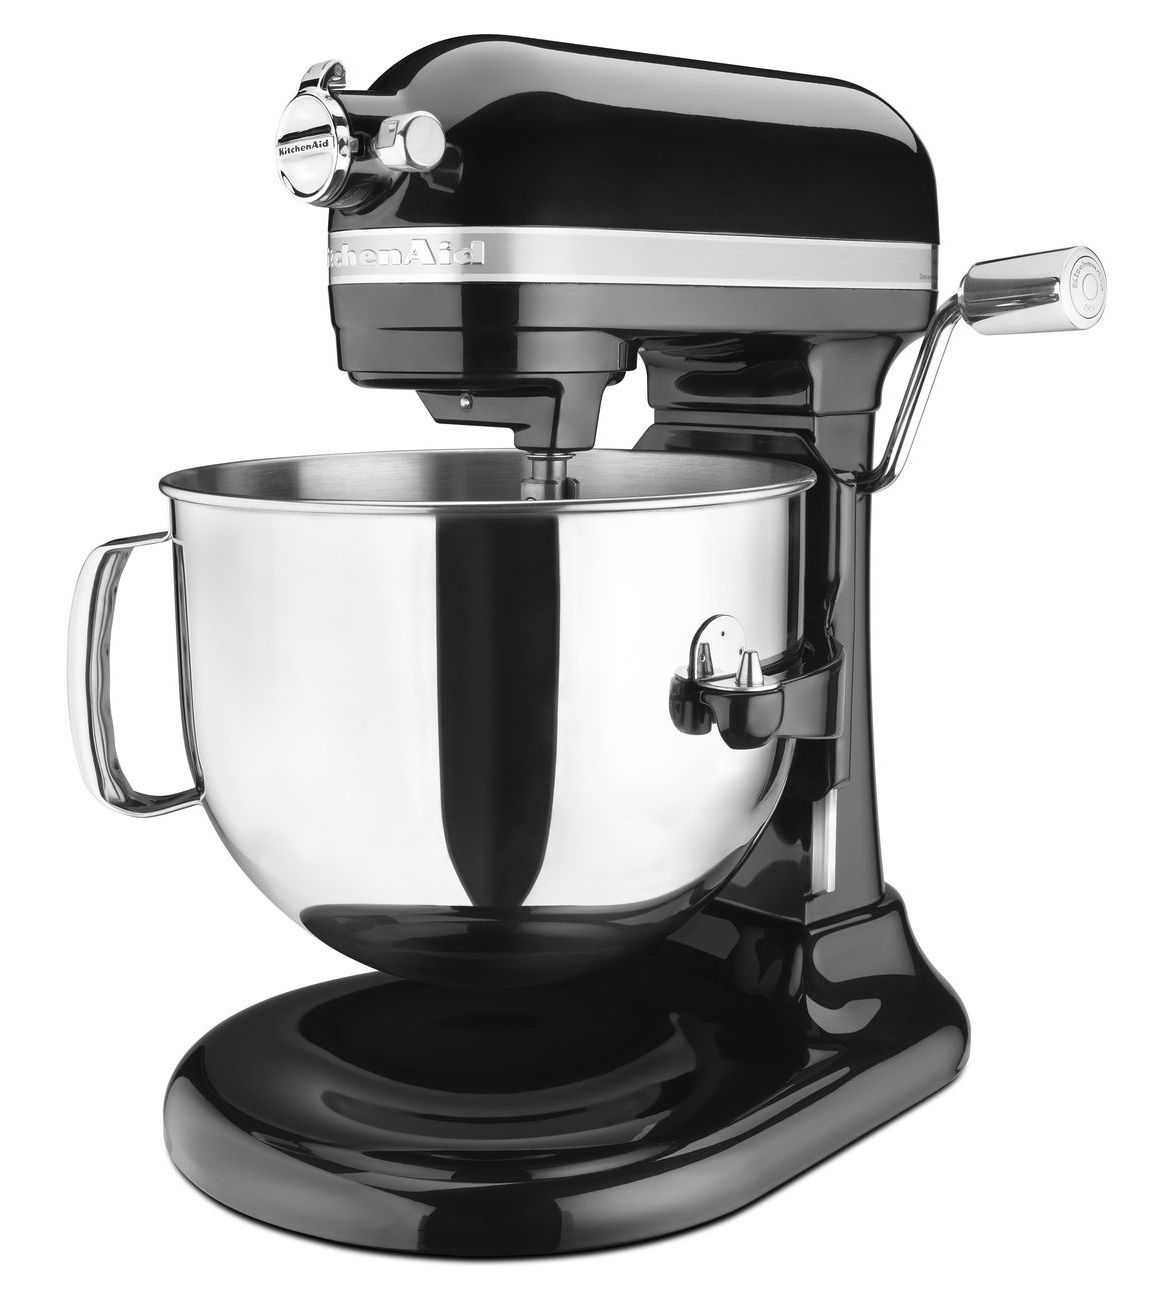 Stand Mixer On Countertop Decor